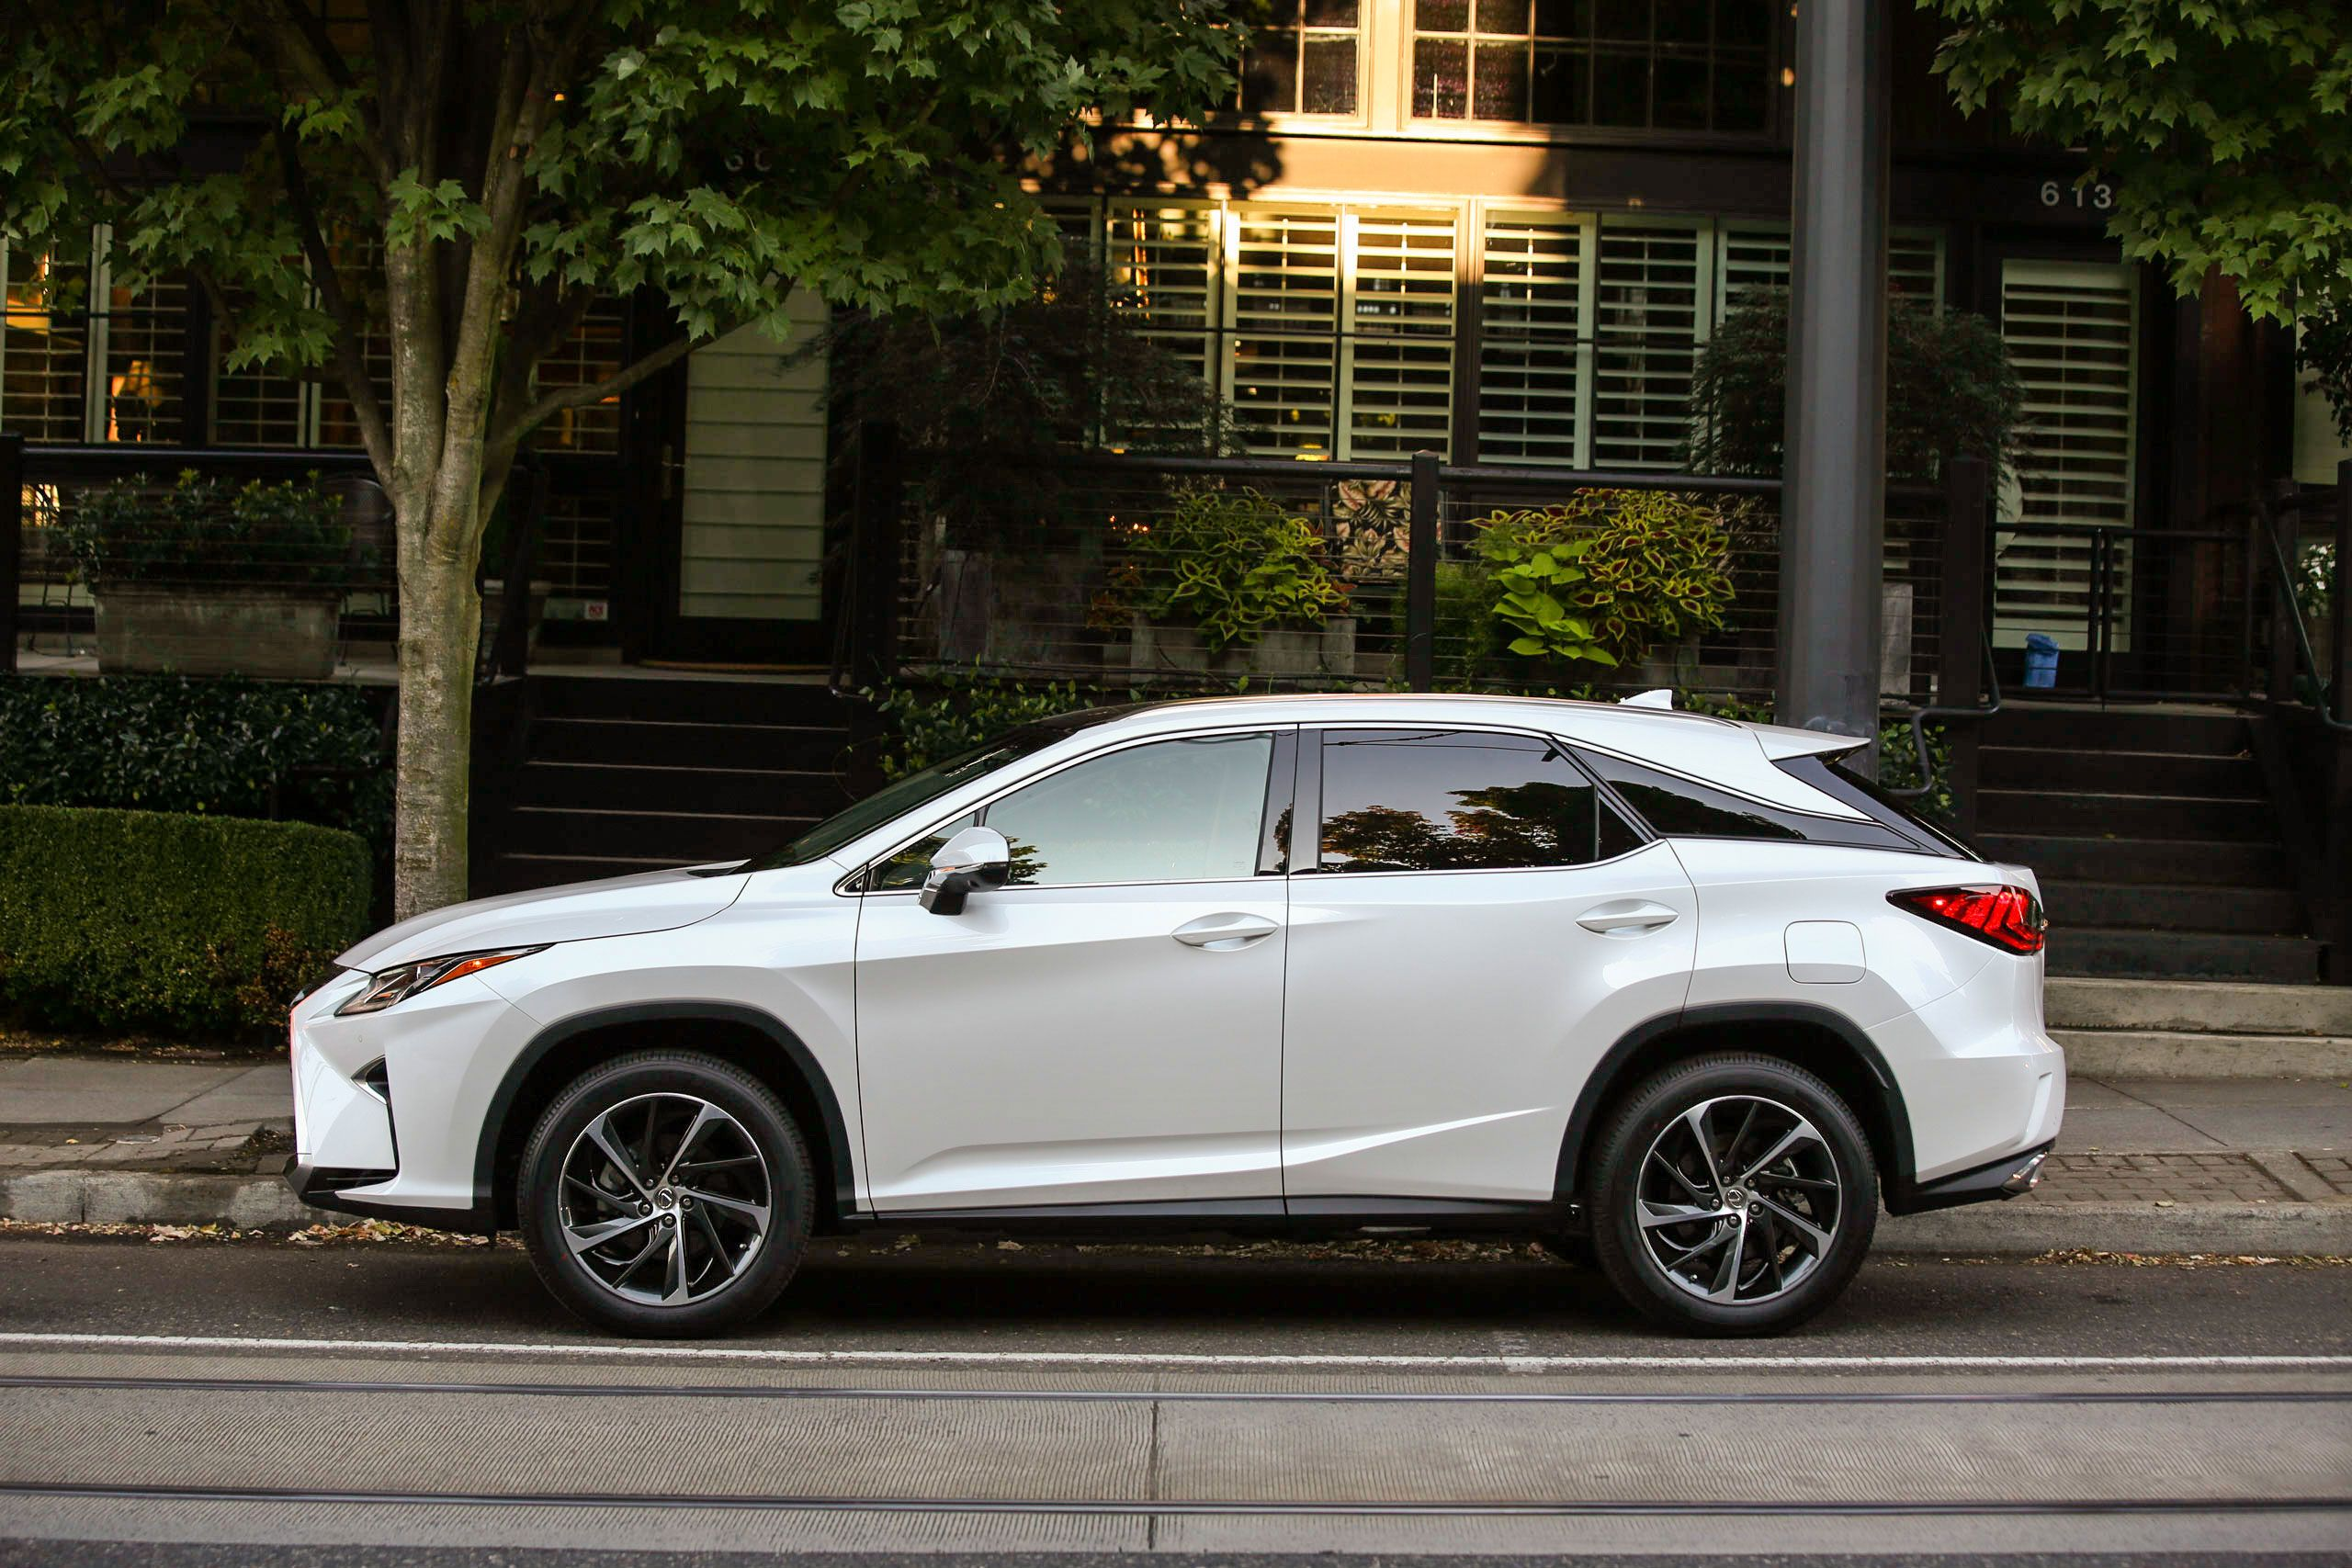 2016 Lexus RX350 available soon at North Park Lexus at